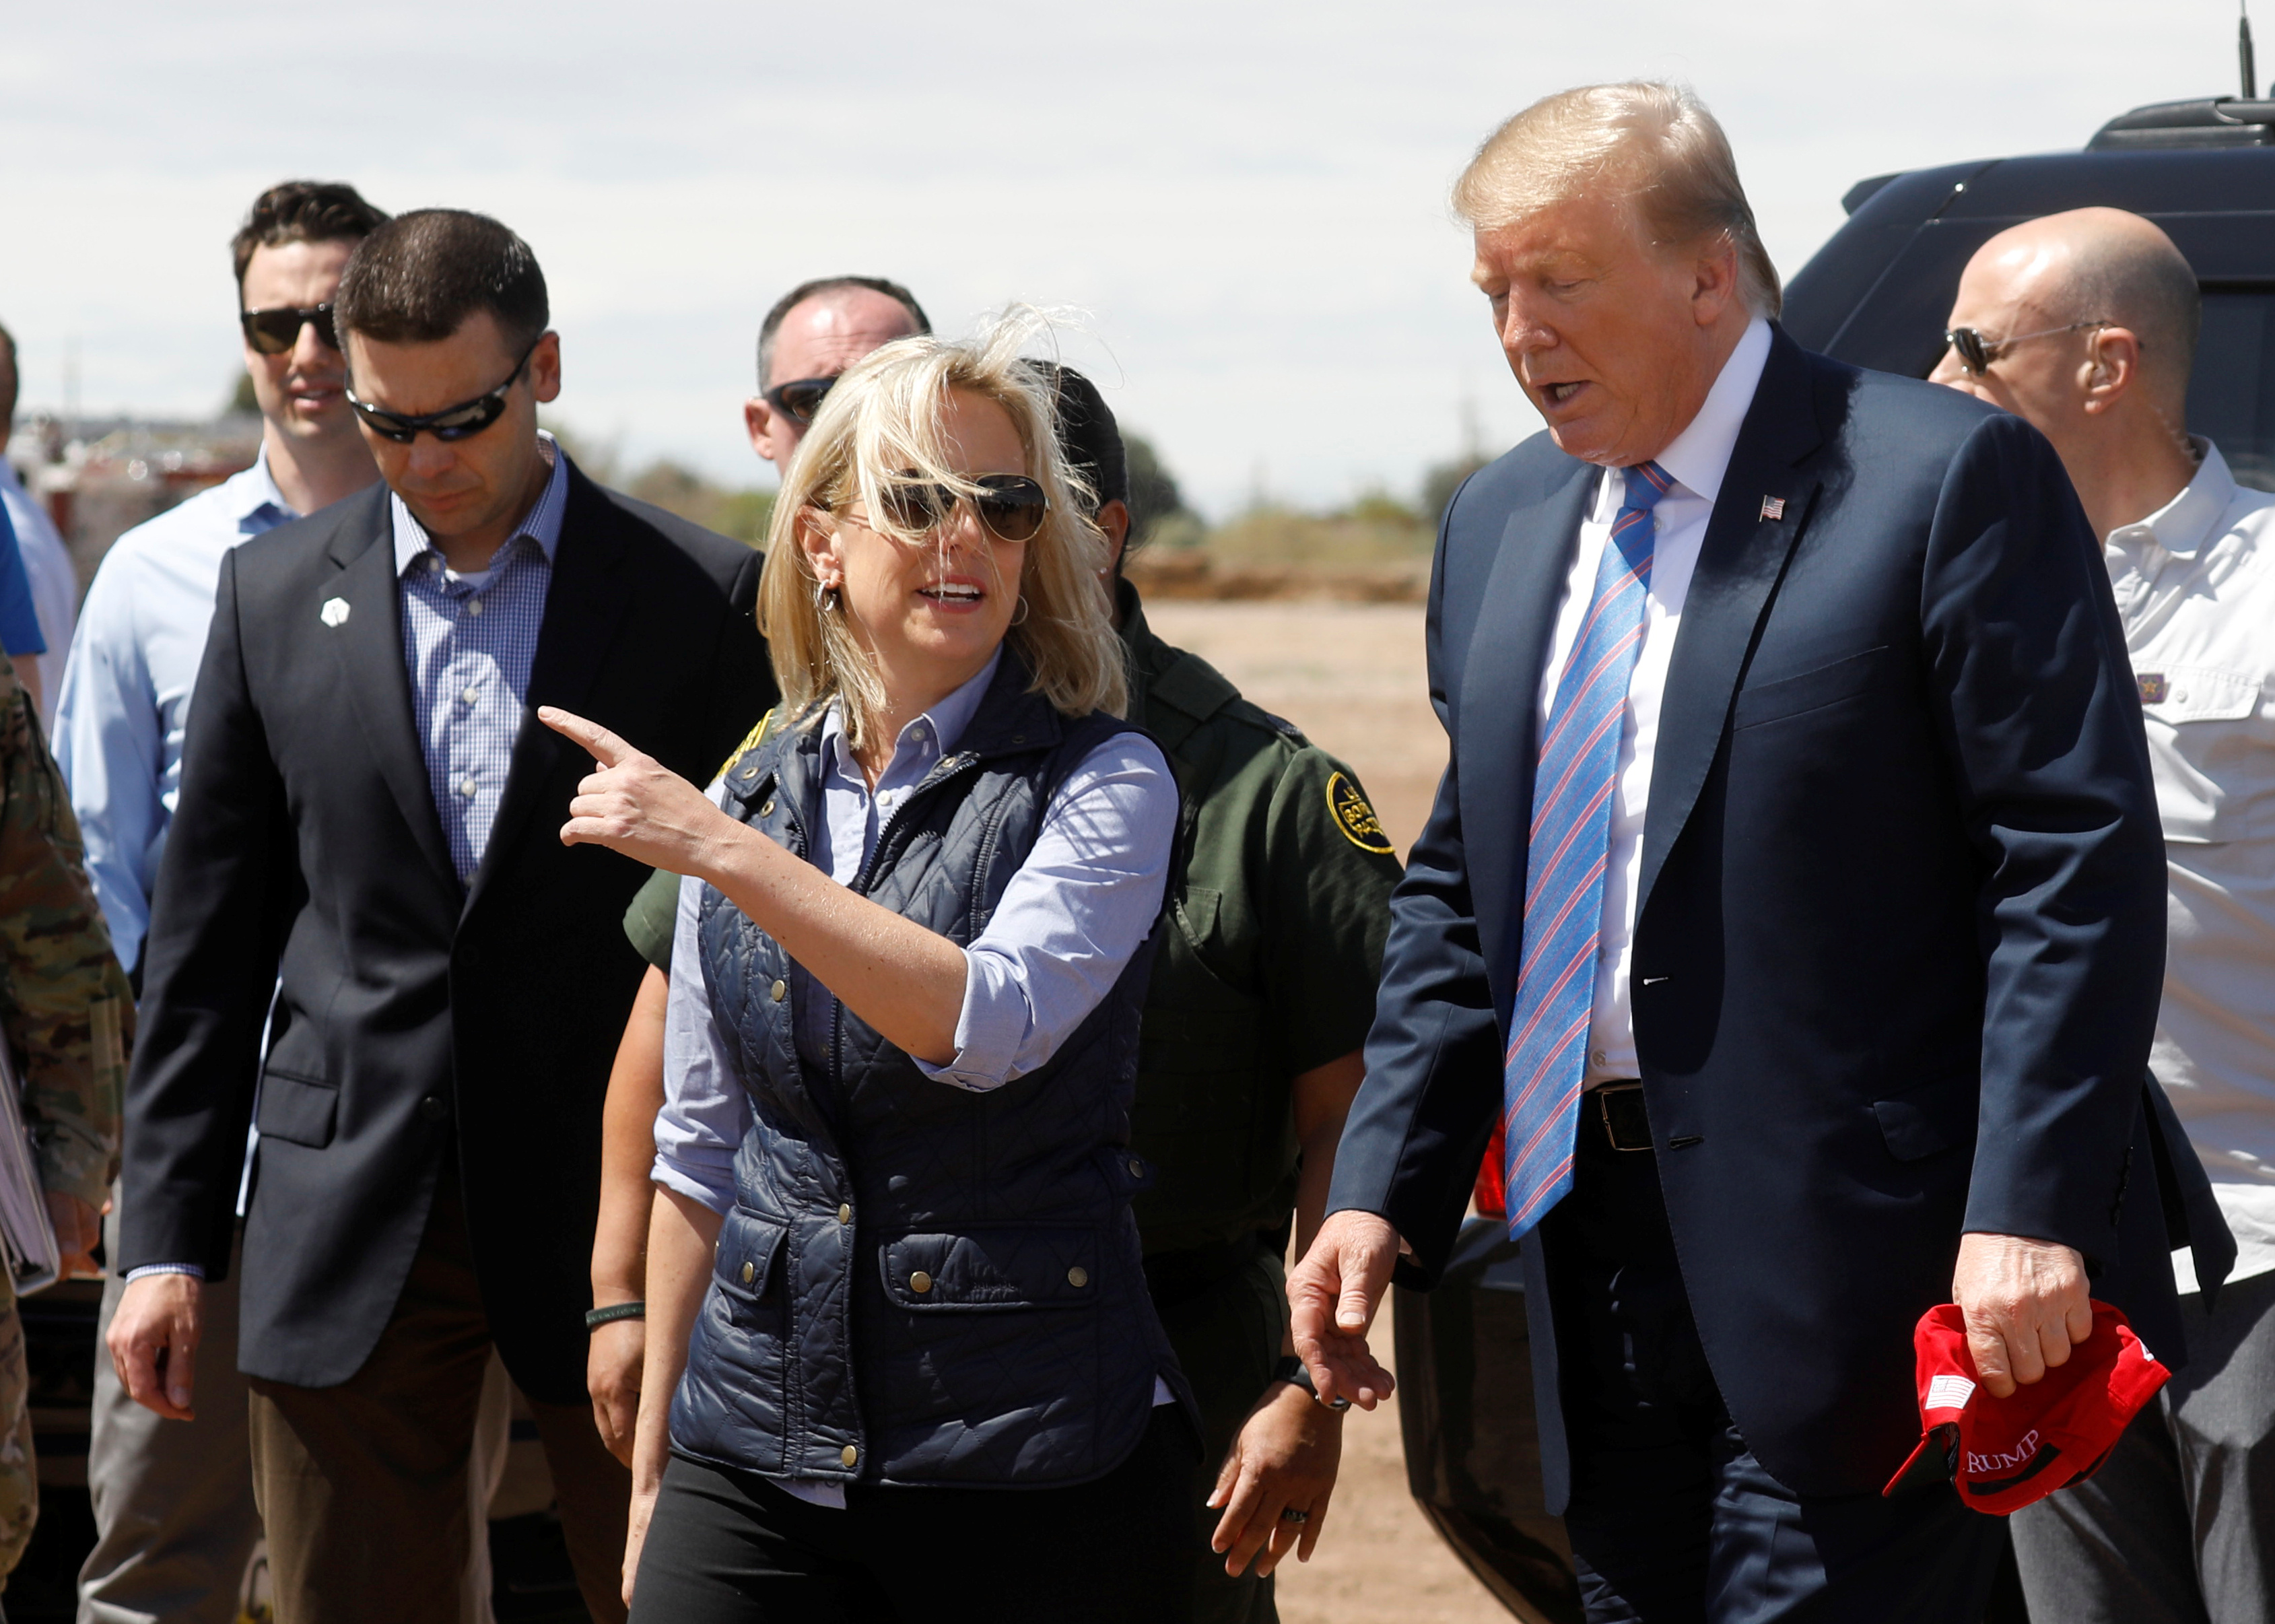 Nielsen and McAleenan walk with Trump at border security tour in California